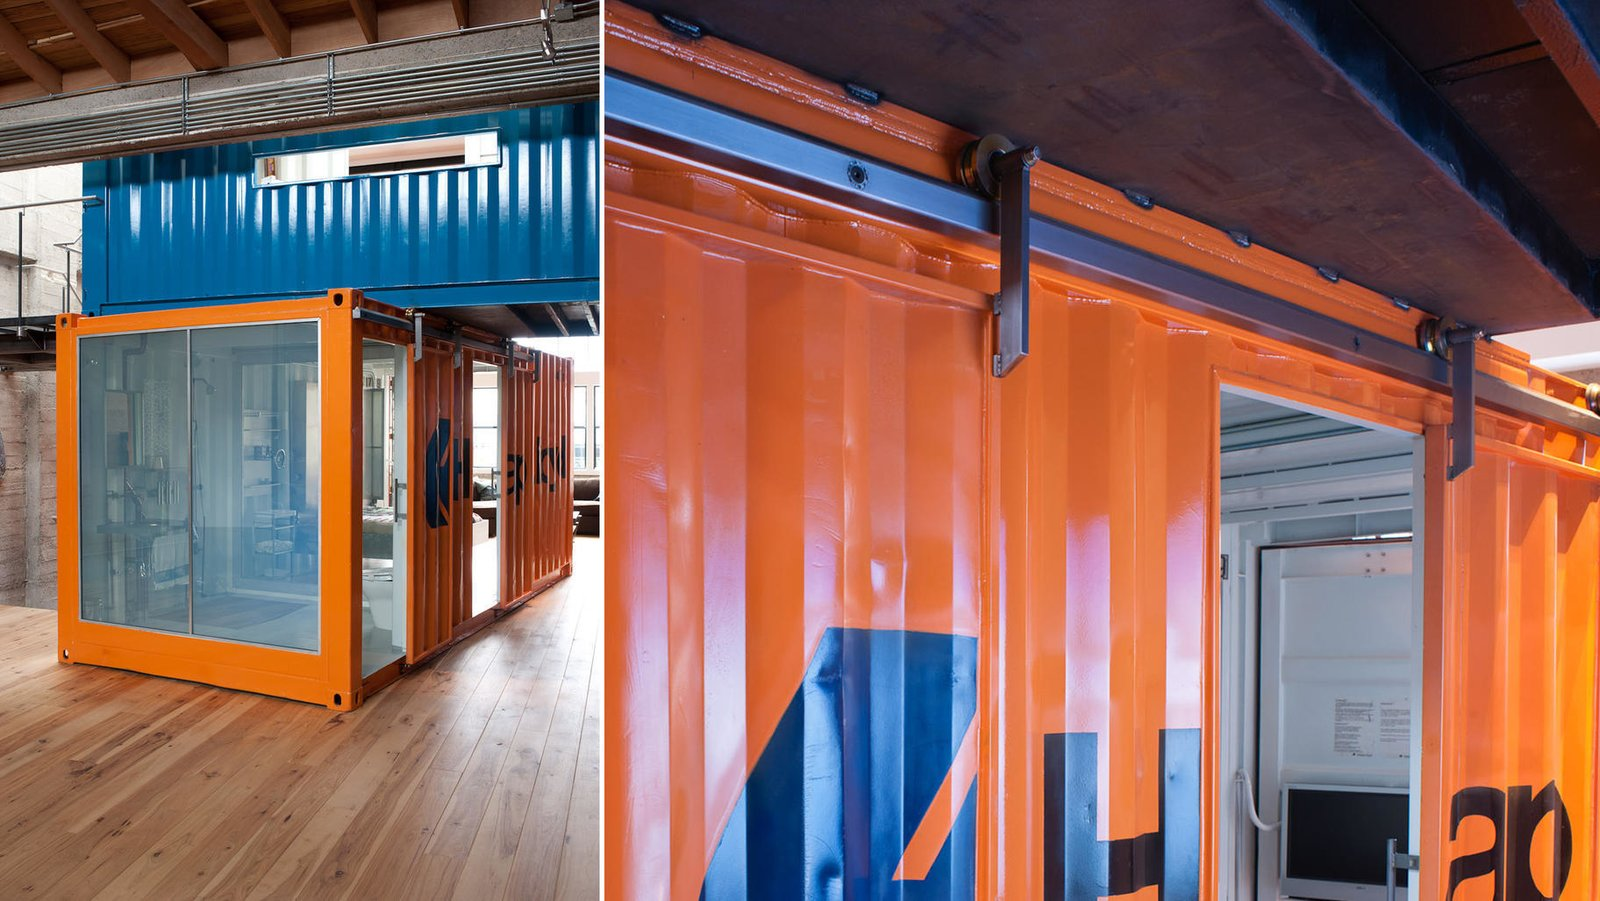 #lundberg #lundbergdesign #sanfrancisco #windows #glass #concrete #warehouse #interior #shippingcontainer #livingroom #shipping #container #hardwoodfloors #flooring  Wardell Sagan Residence by Lundberg Design